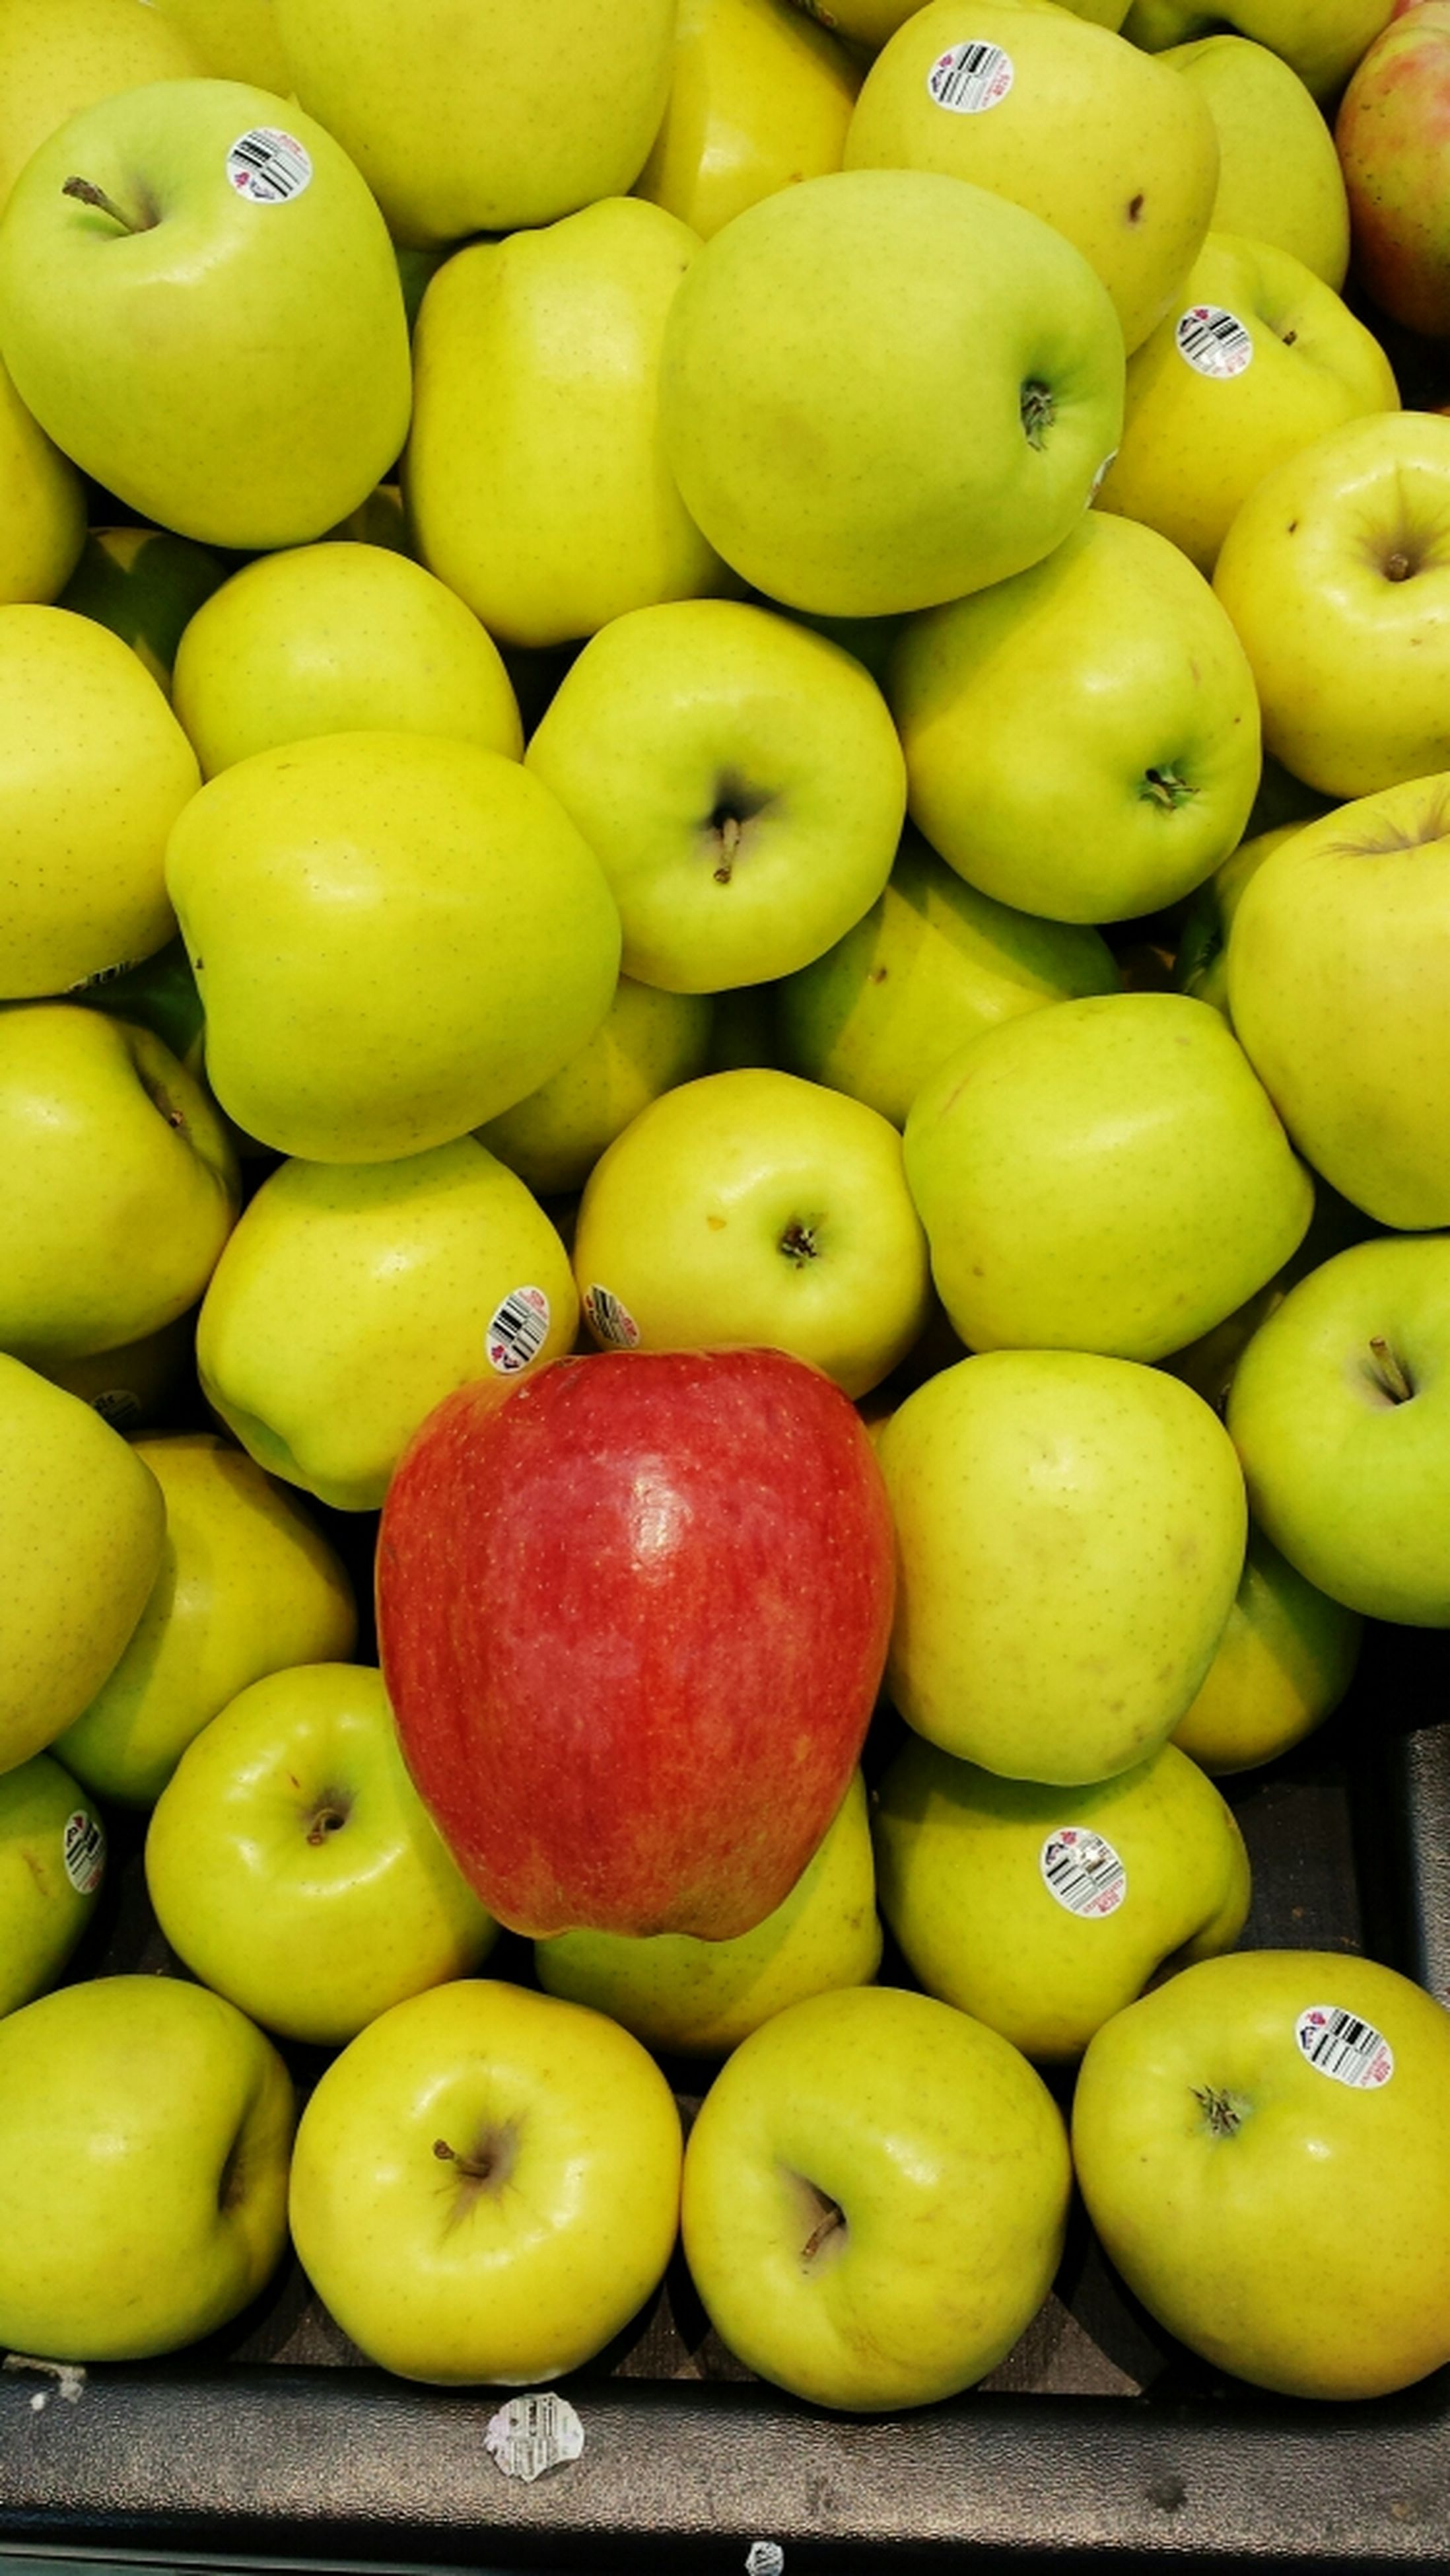 food and drink, food, healthy eating, freshness, fruit, large group of objects, abundance, yellow, full frame, for sale, indoors, backgrounds, still life, retail, organic, variation, close-up, ripe, choice, apple